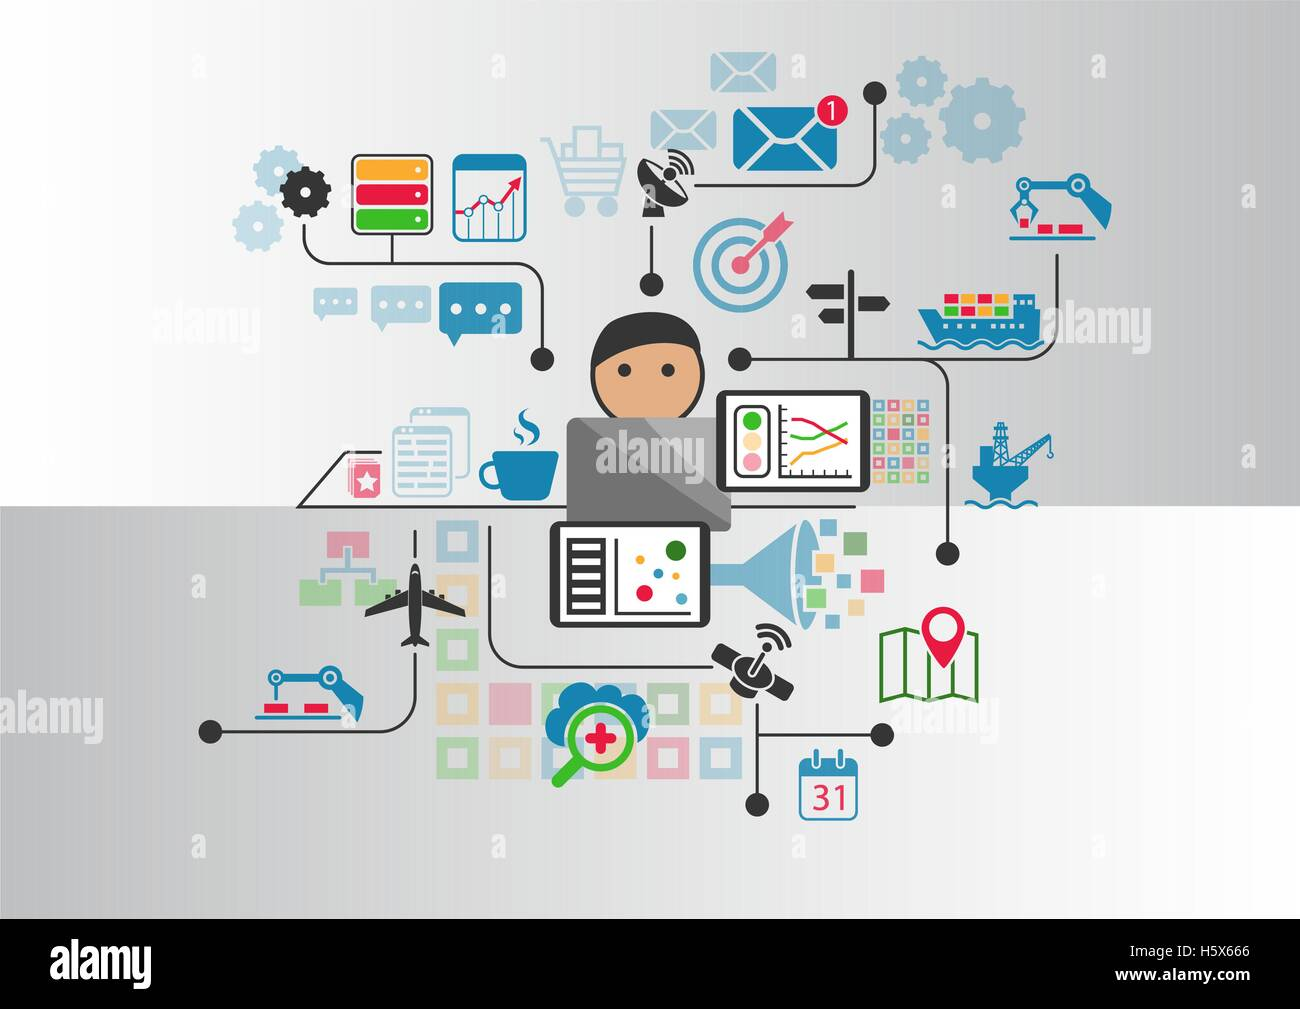 Industrial internet or industry 4.0 vector background with person controlling connected objects from notebook - Stock Image